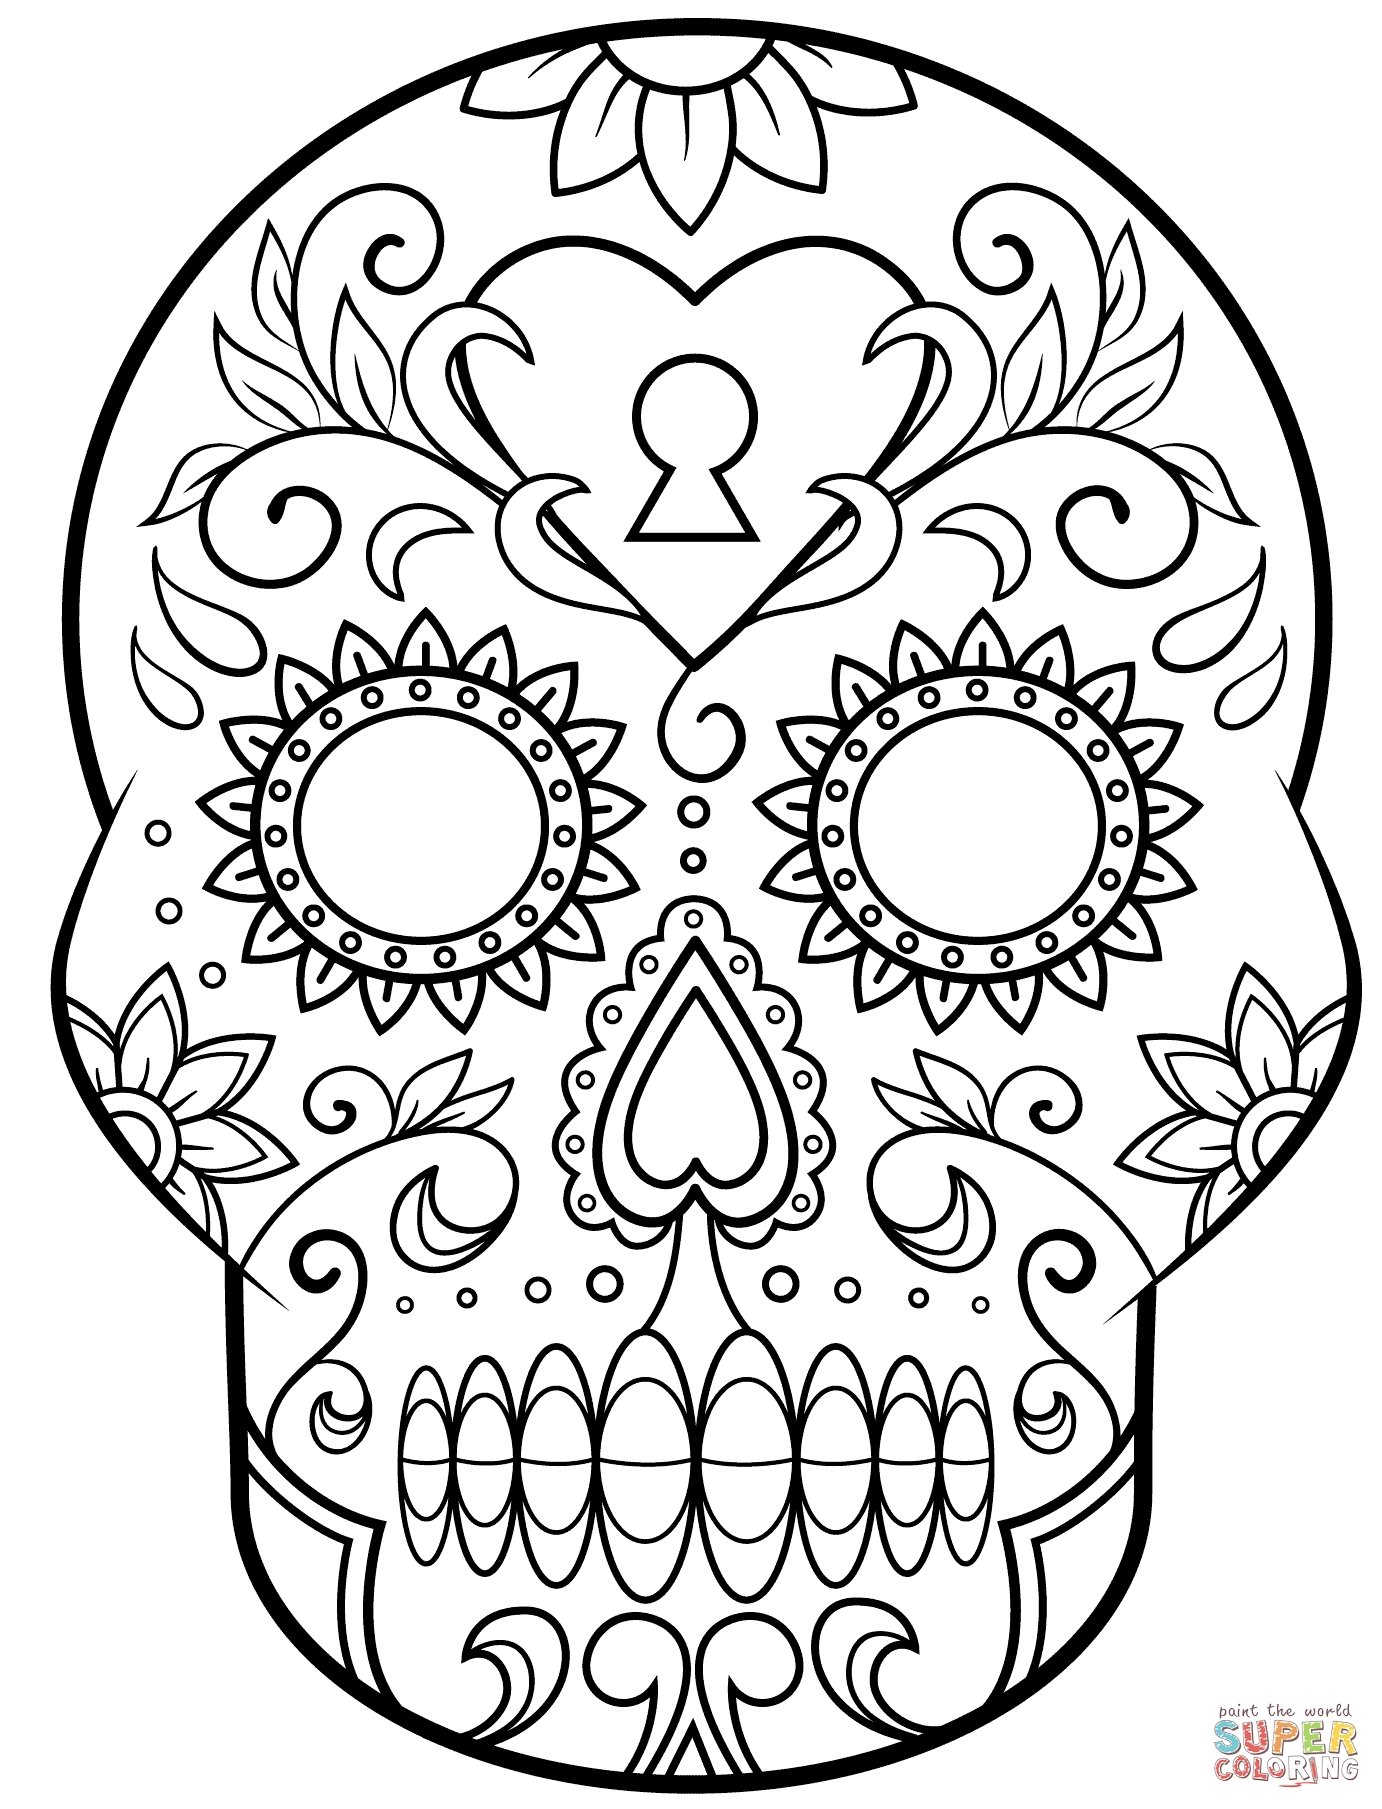 Day Of the Dead Skull Coloring Page - Day Of the Dead Sugar Skull